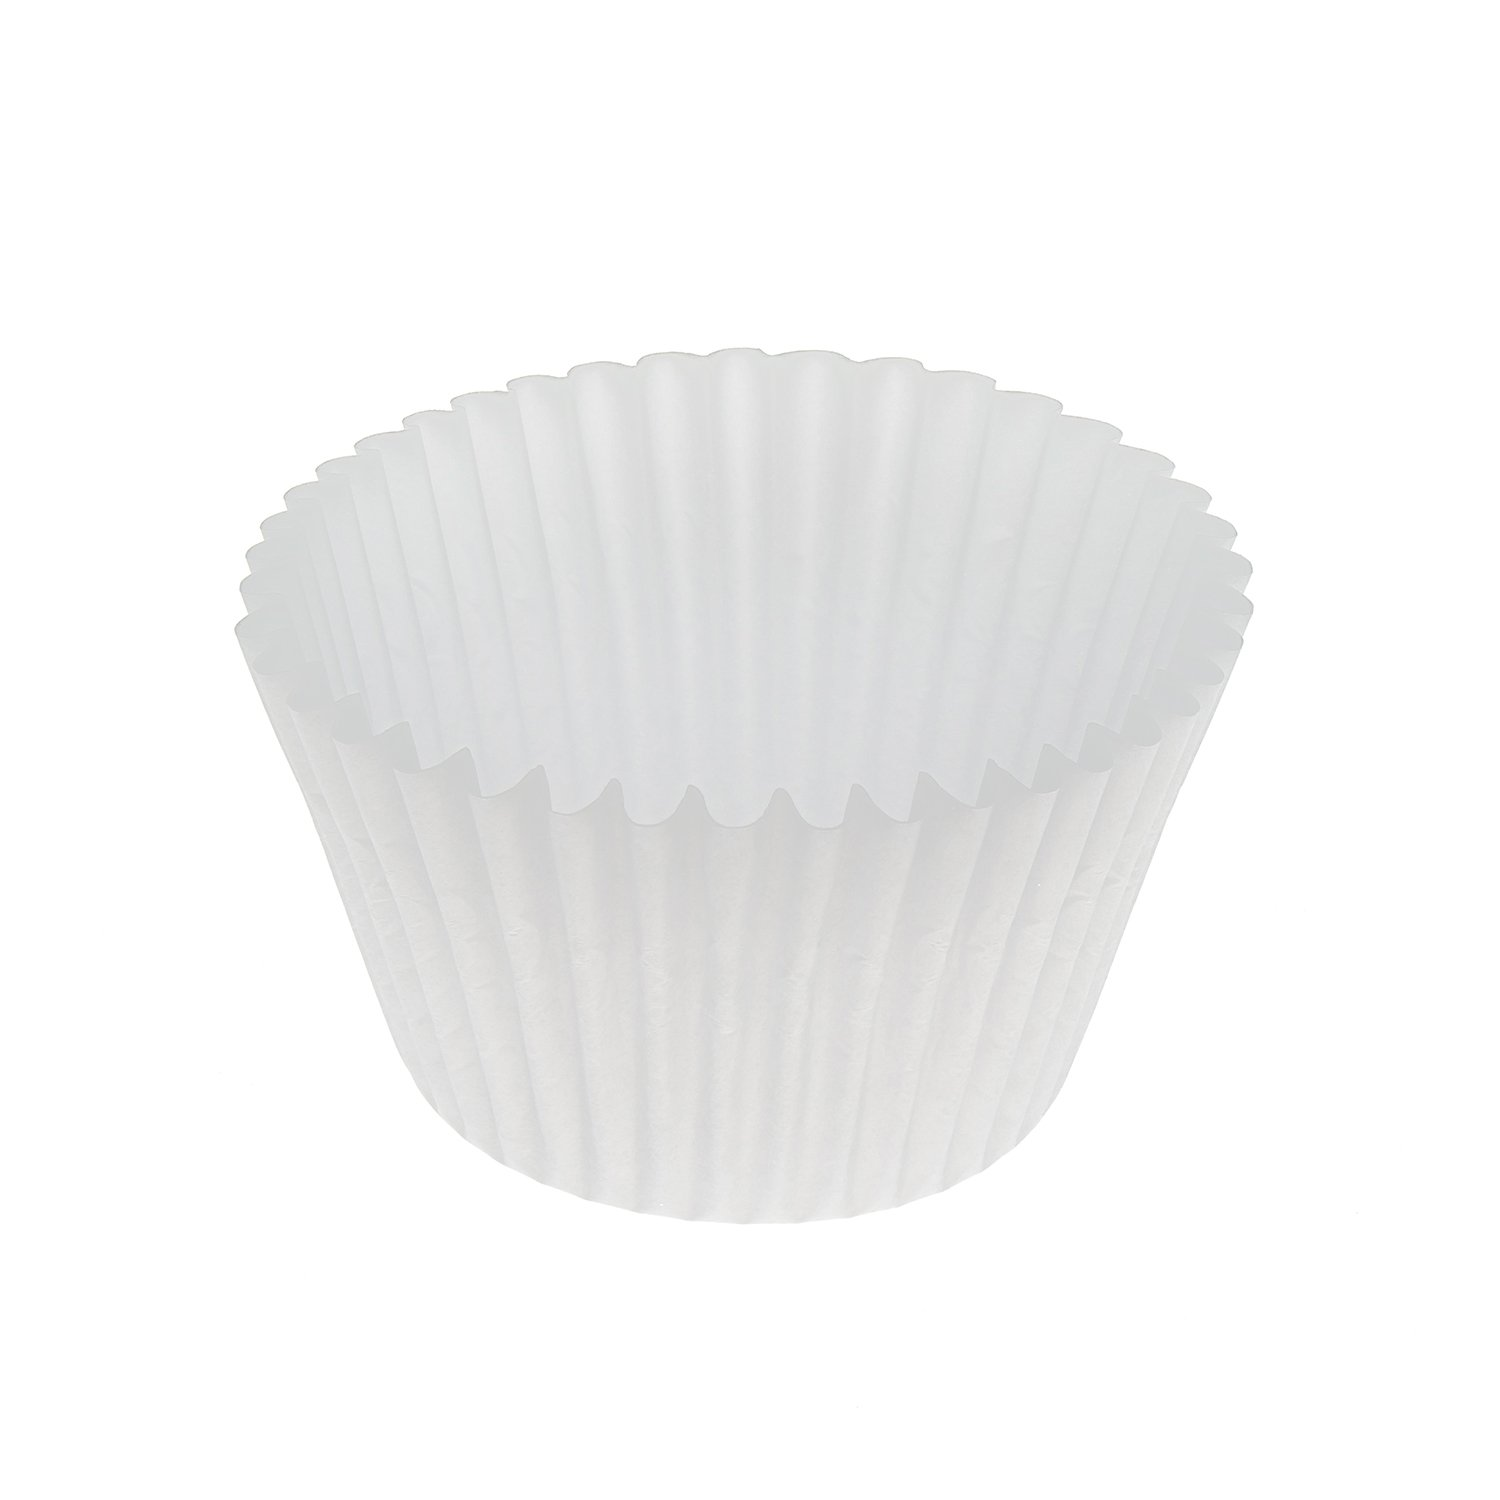 Royal 6'' Baking Cup, Case of 10,000